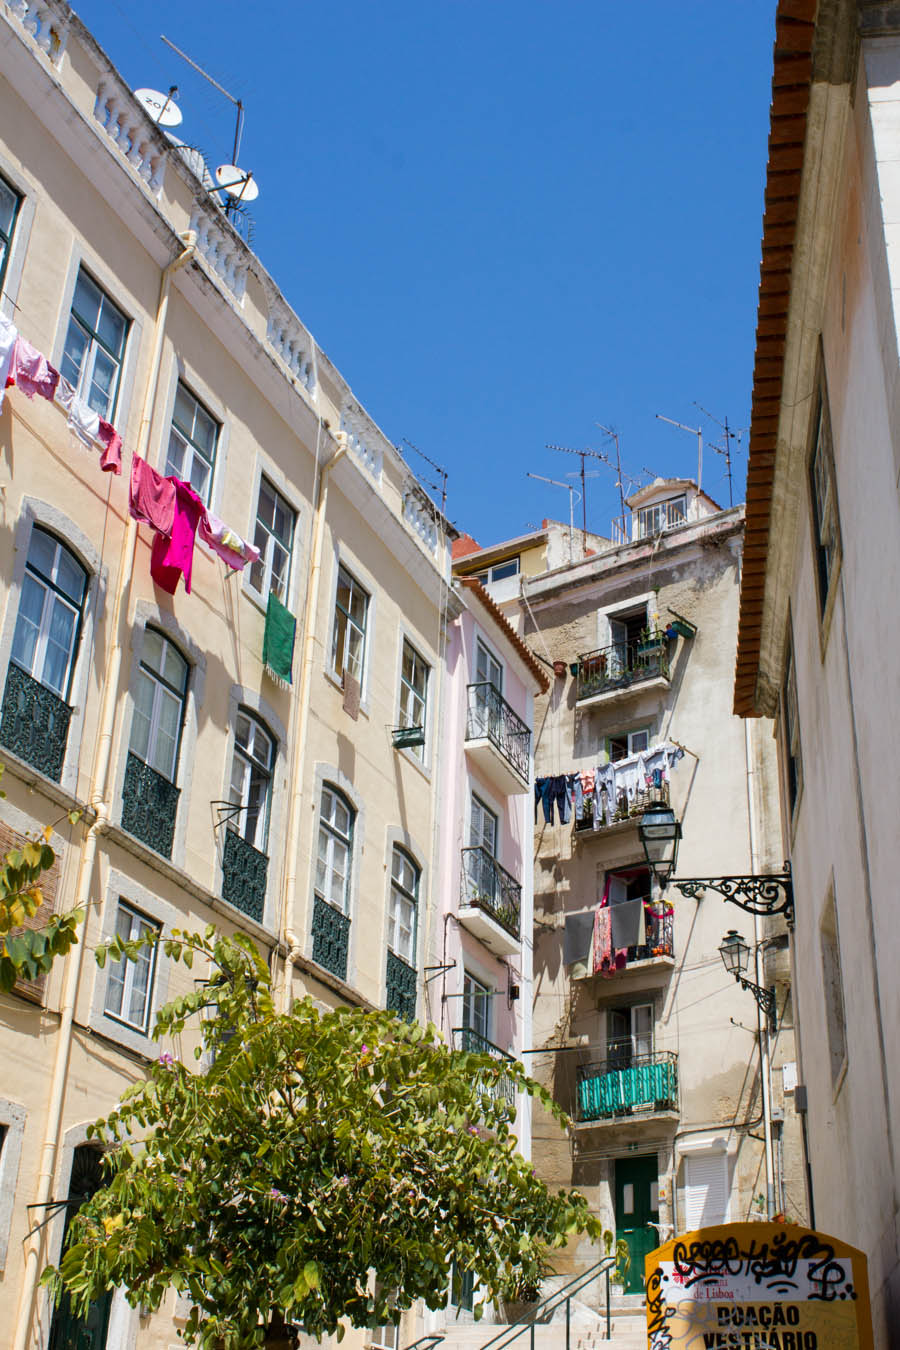 lisbon-streets-travel-tips-blackbirdsblossom-24